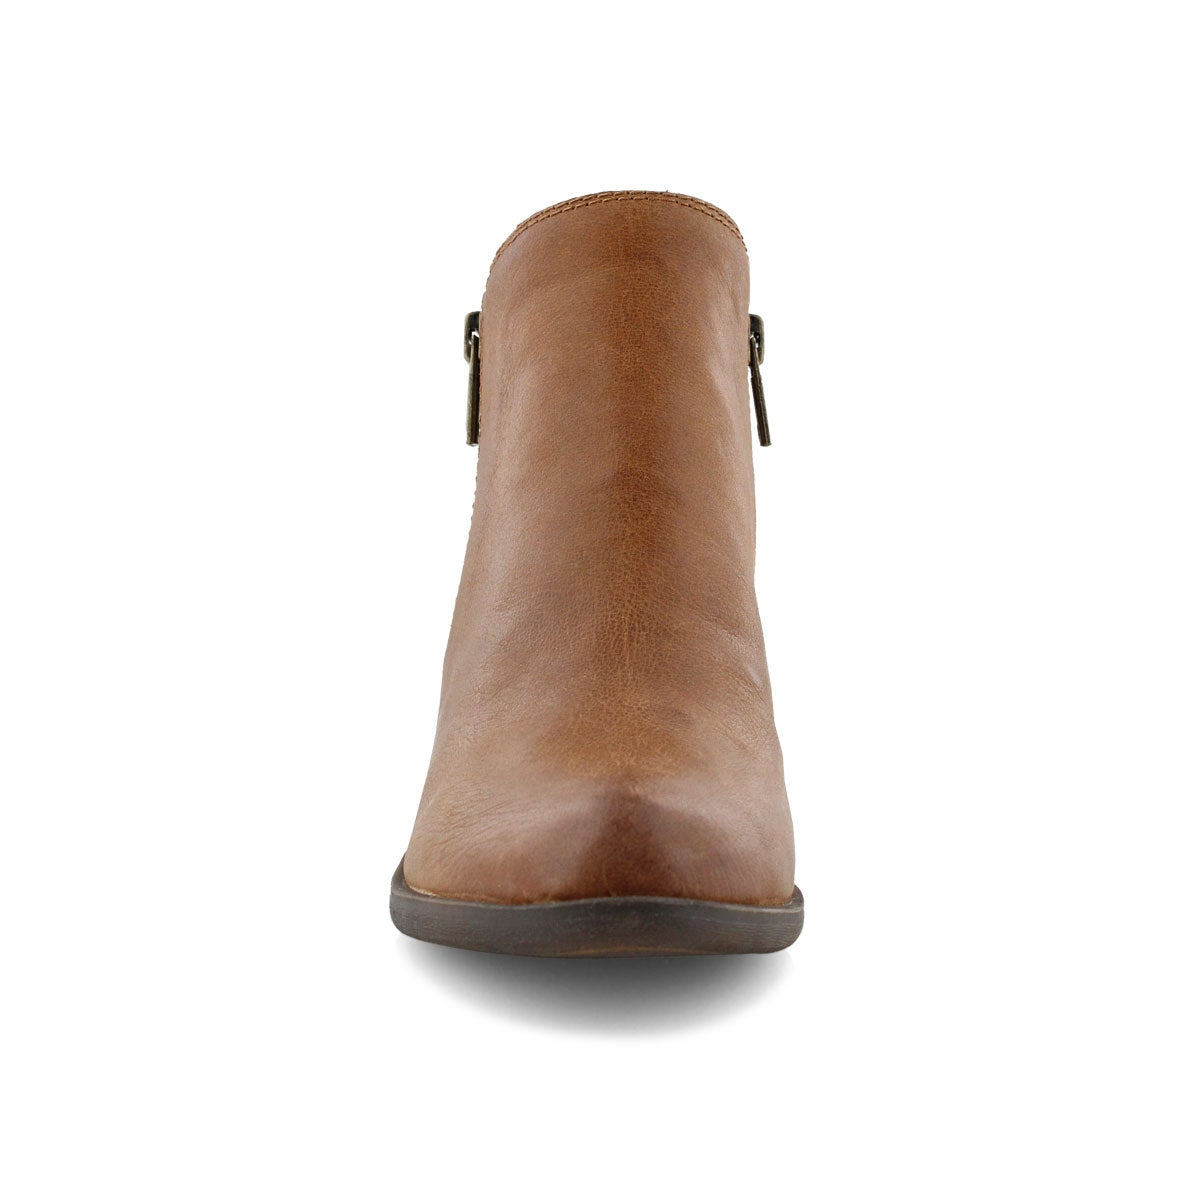 Lds Basel toffee zip up casual bootie